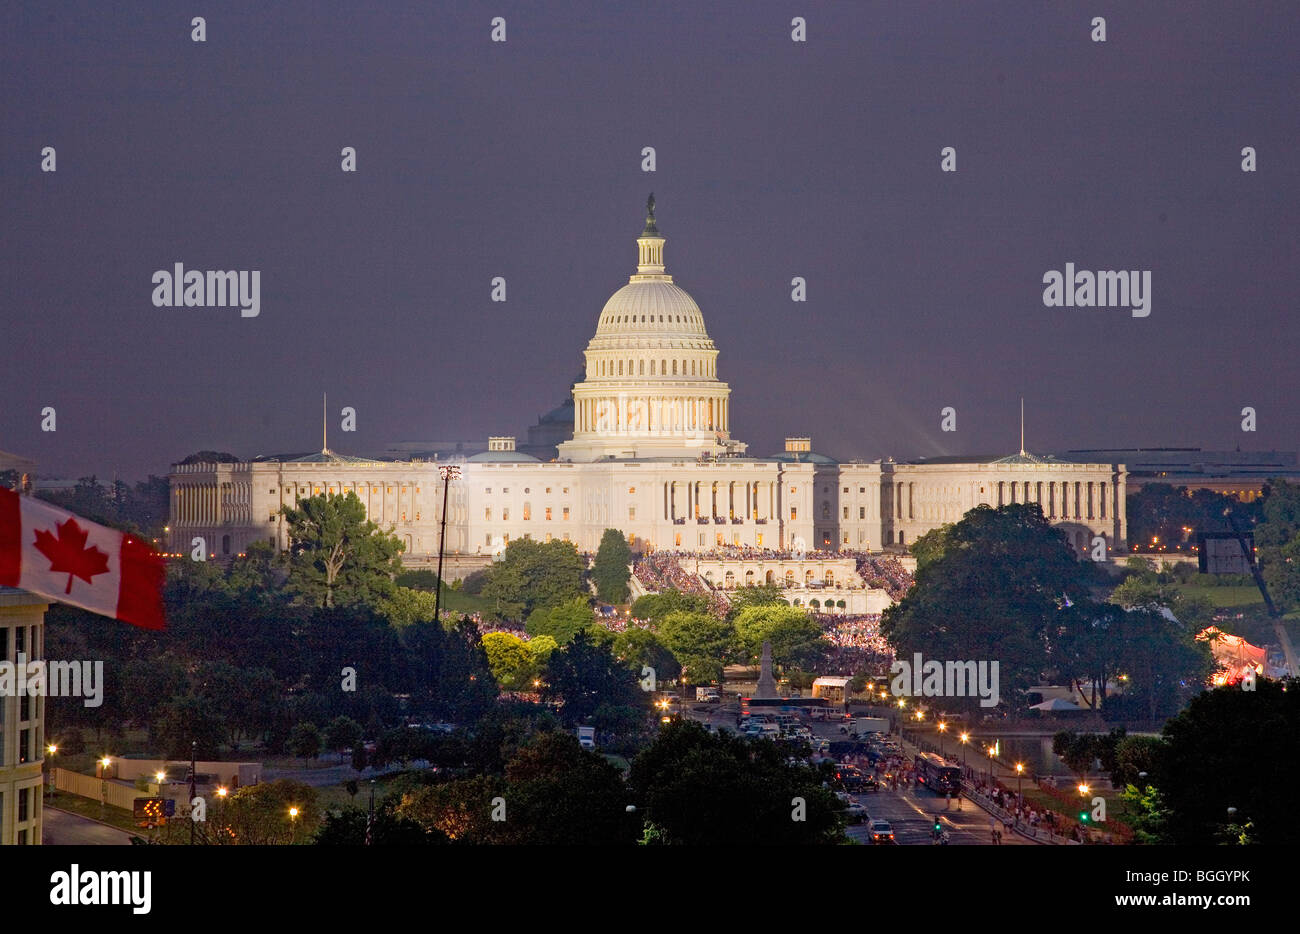 US Capitol at night on July 4, 2008 with tens of thousands in audience to see fireworks display, Washington, D.C. - Stock Image